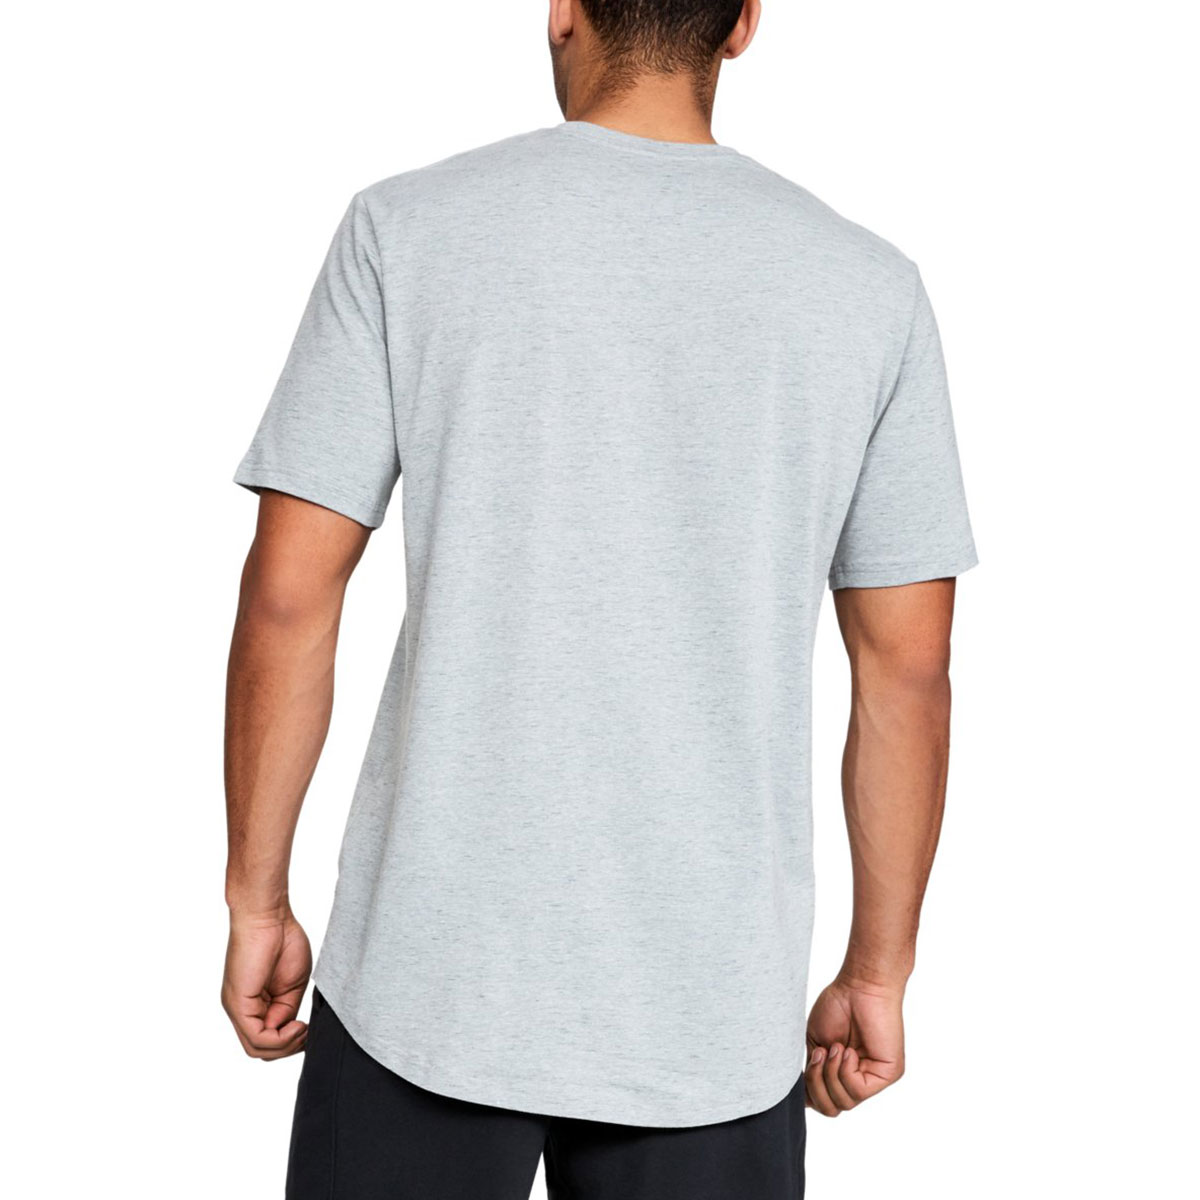 Under-Armour-Mens-UA-Sportstyle-SS-Moisture-Wicking-T-Shirt-39-OFF-RRP thumbnail 11